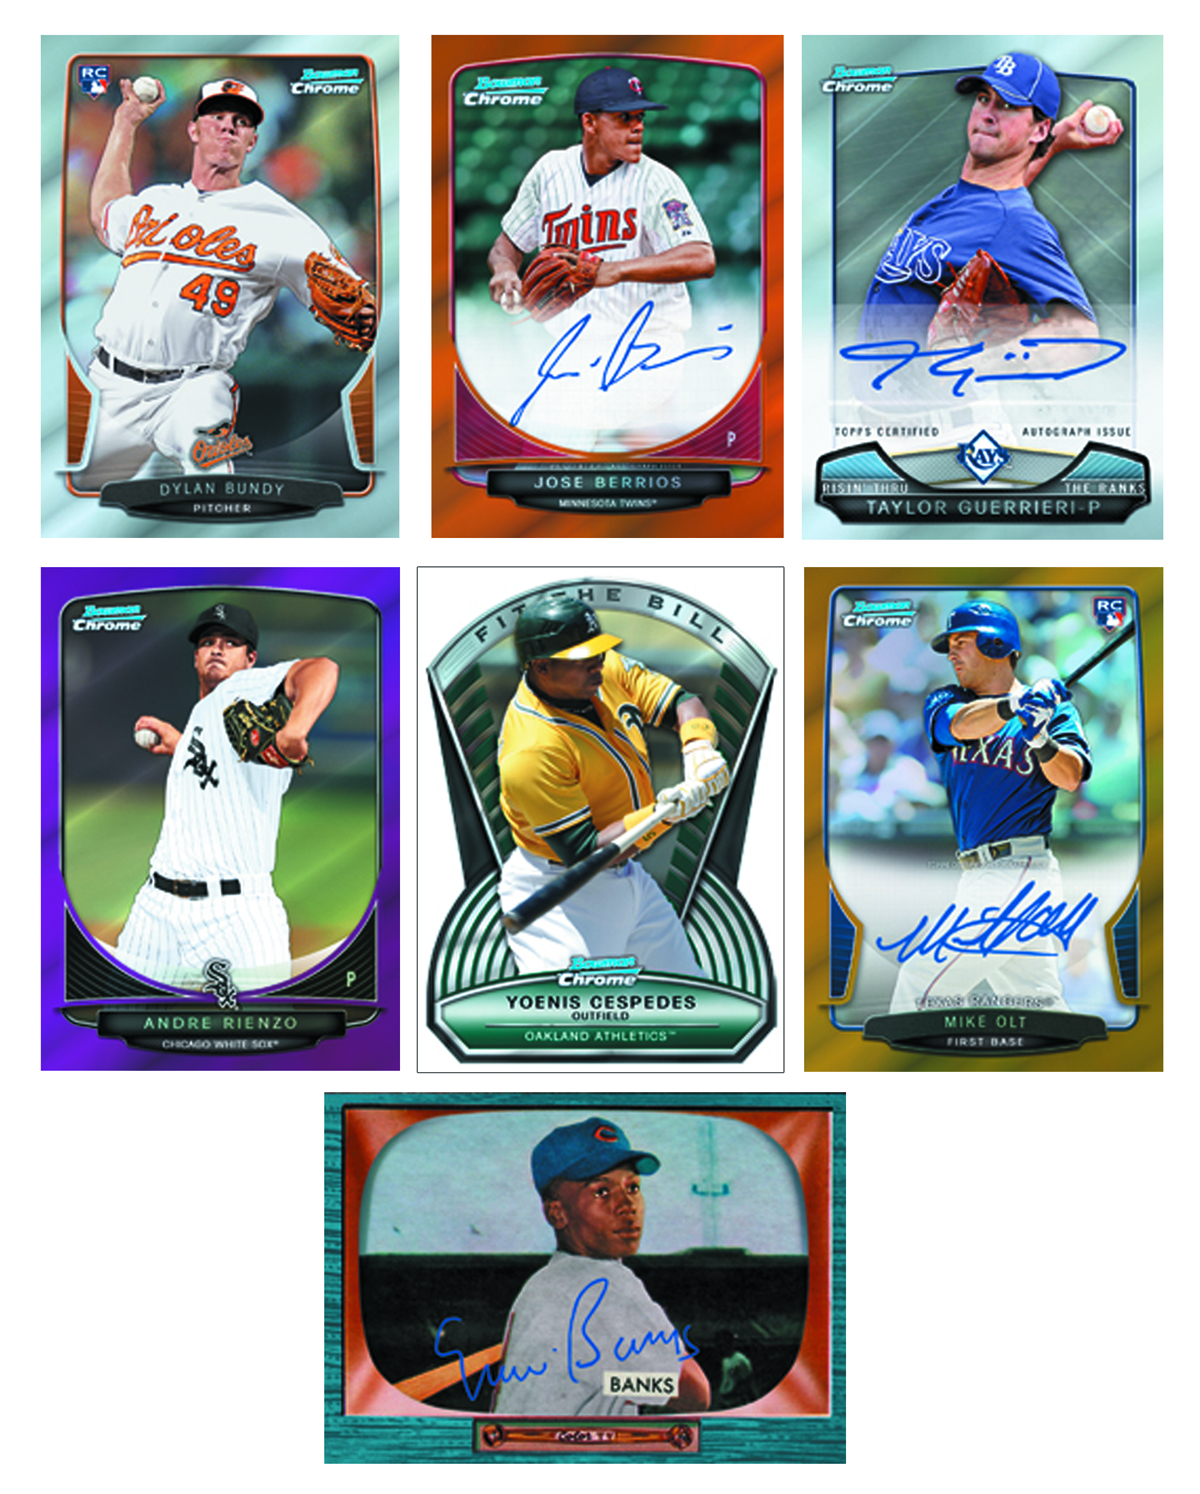 BOWMAN 2013 CHROME BASEBALL T/C BOX